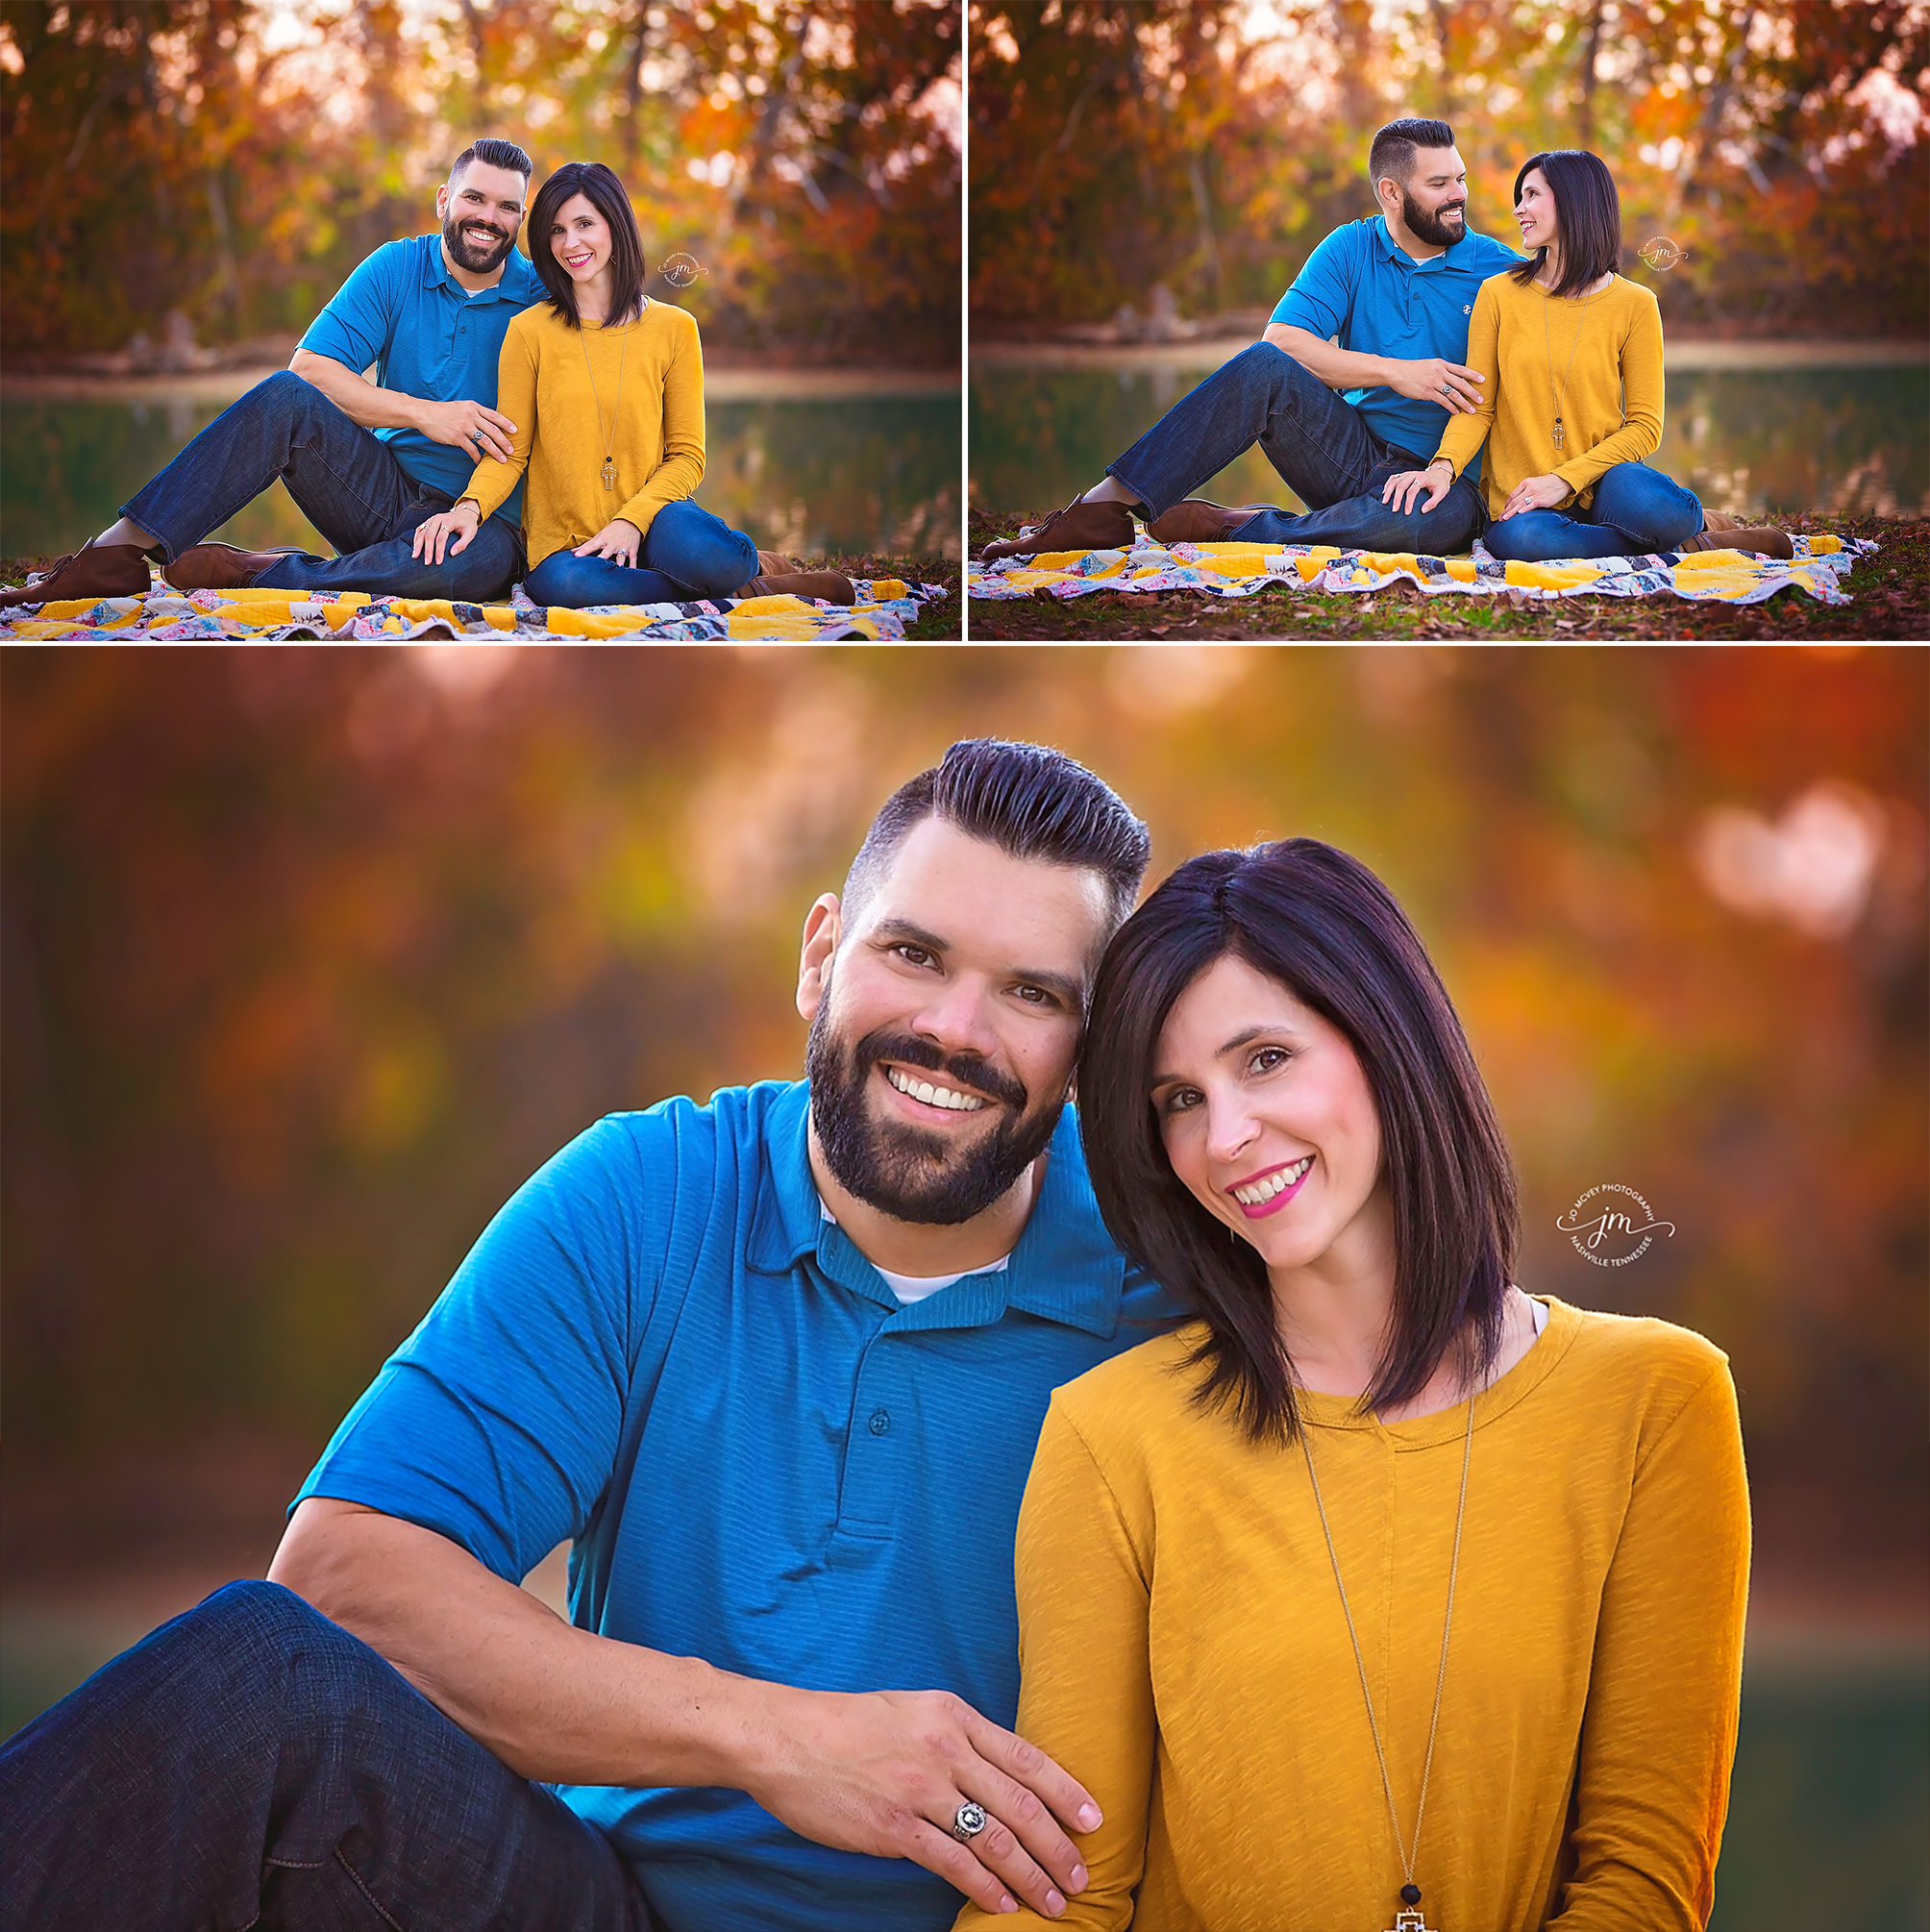 Fall couple - Nashville Portrait Photographer | Jo McVey Photography